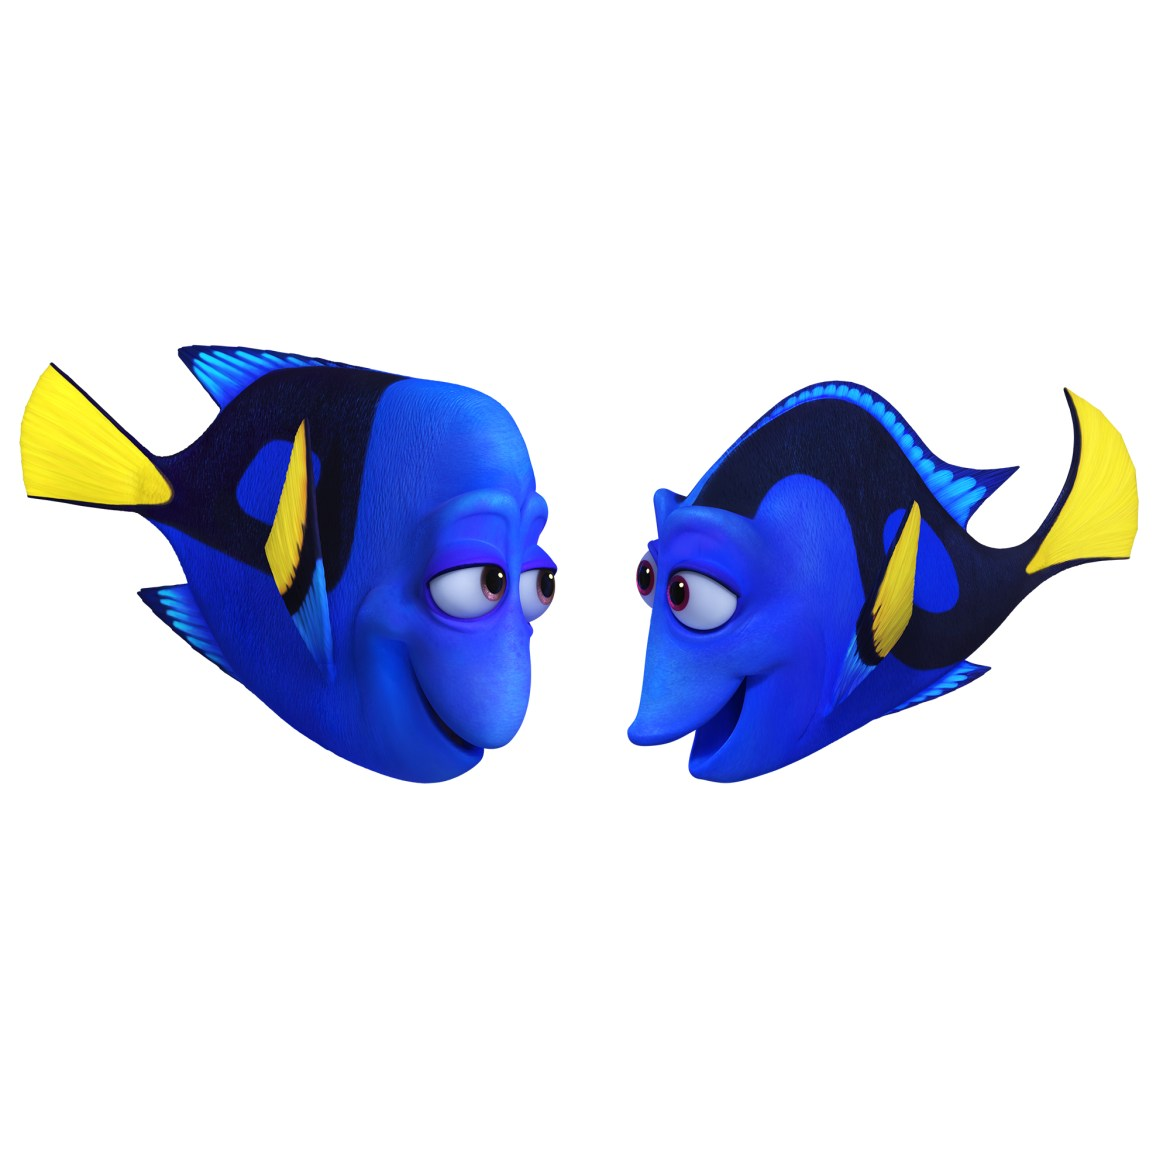 """Full List of """"Finding Dory"""" Cast & Characters Revealed!"""